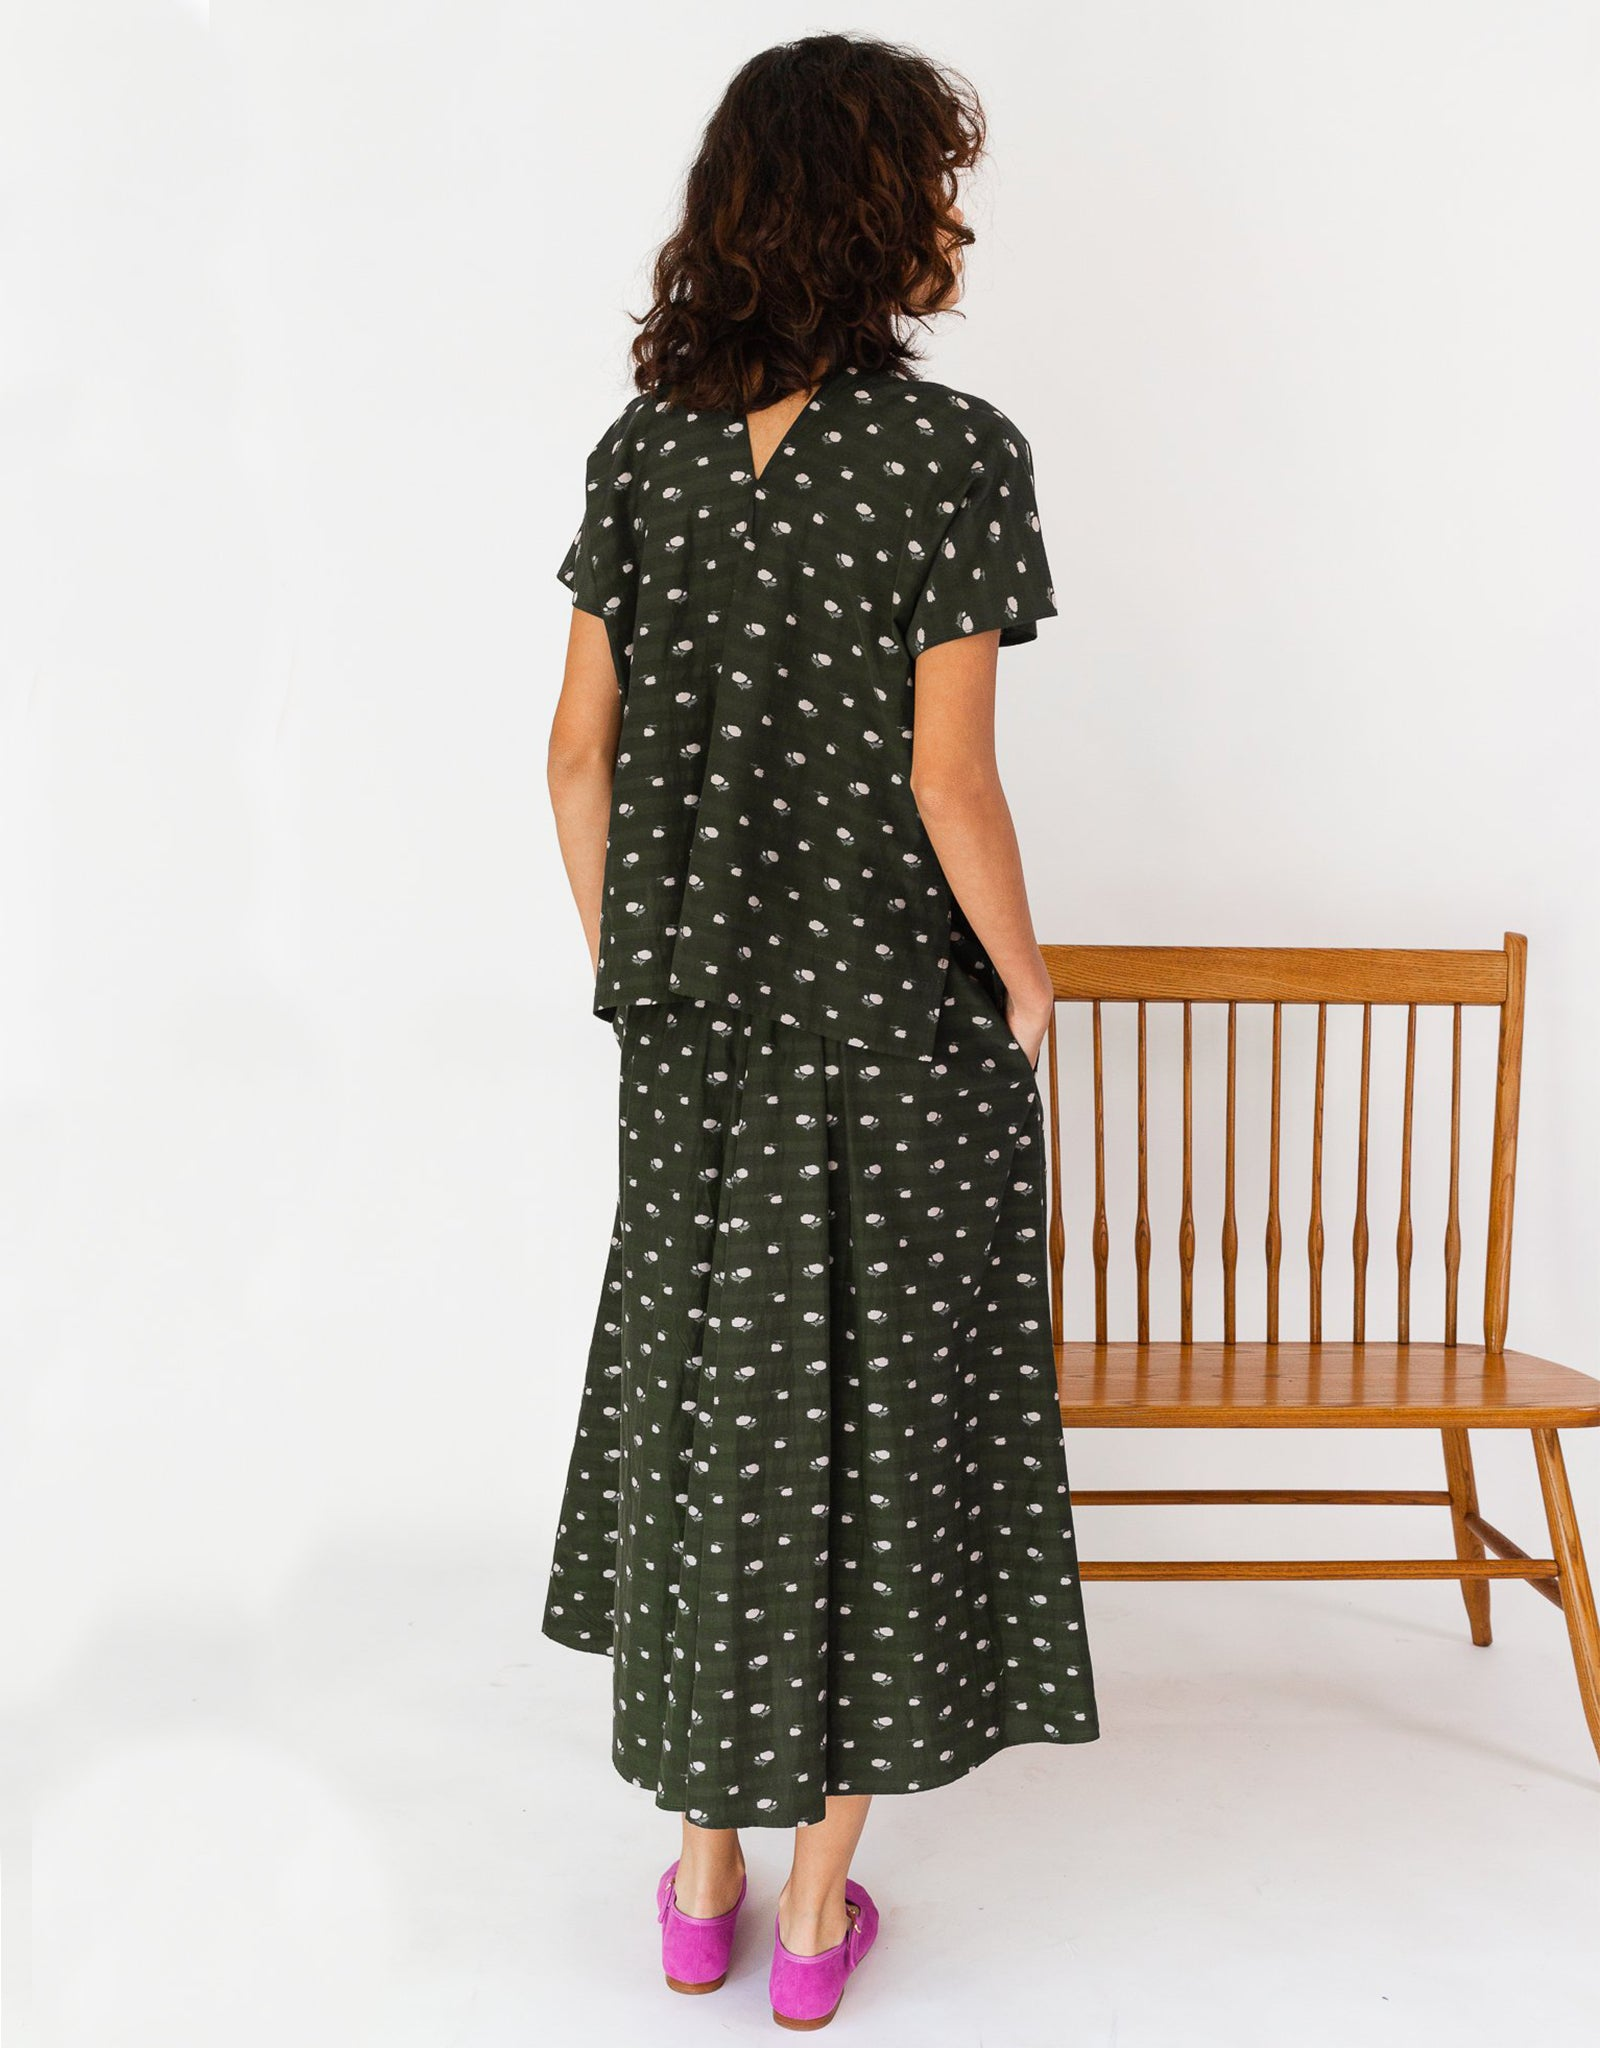 Model in Caron Callahan  patterned olive Selma dress from Shop FAWN